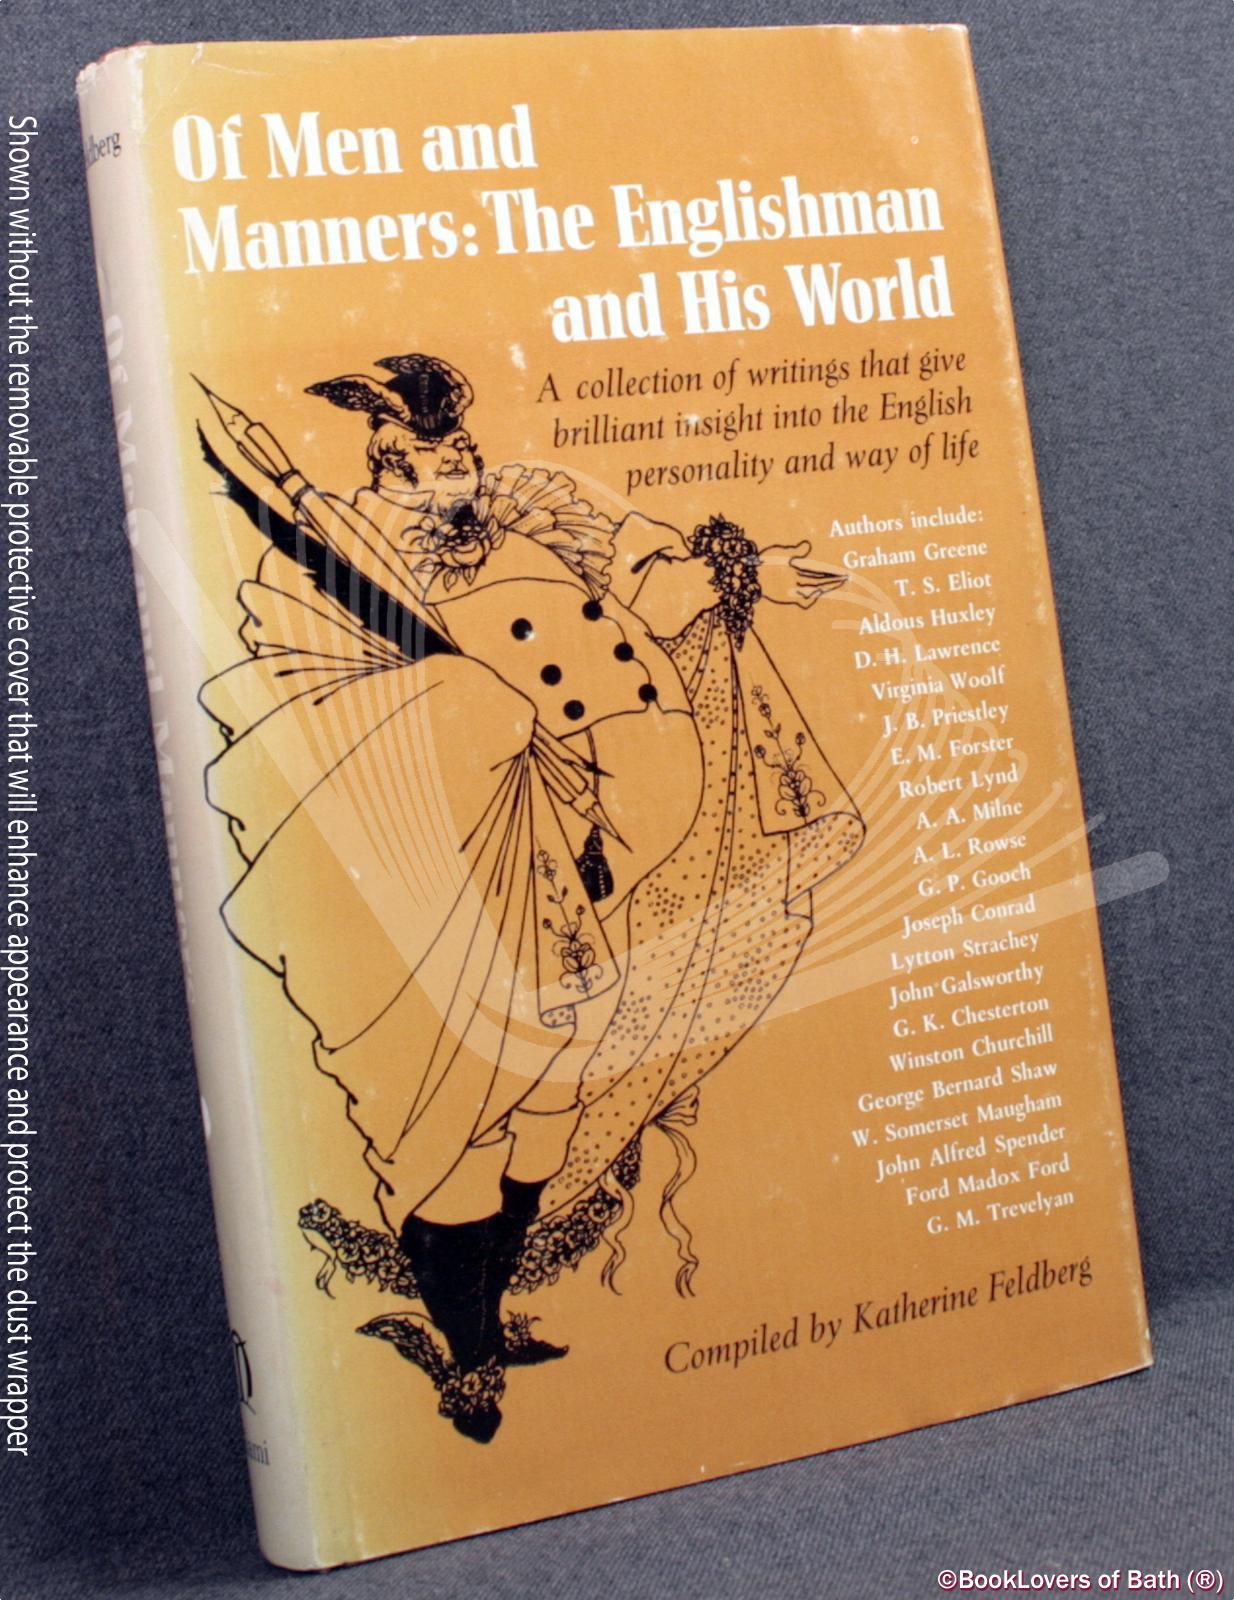 Of Men and Manners: The Englishman and His World - Katherine Feldberg